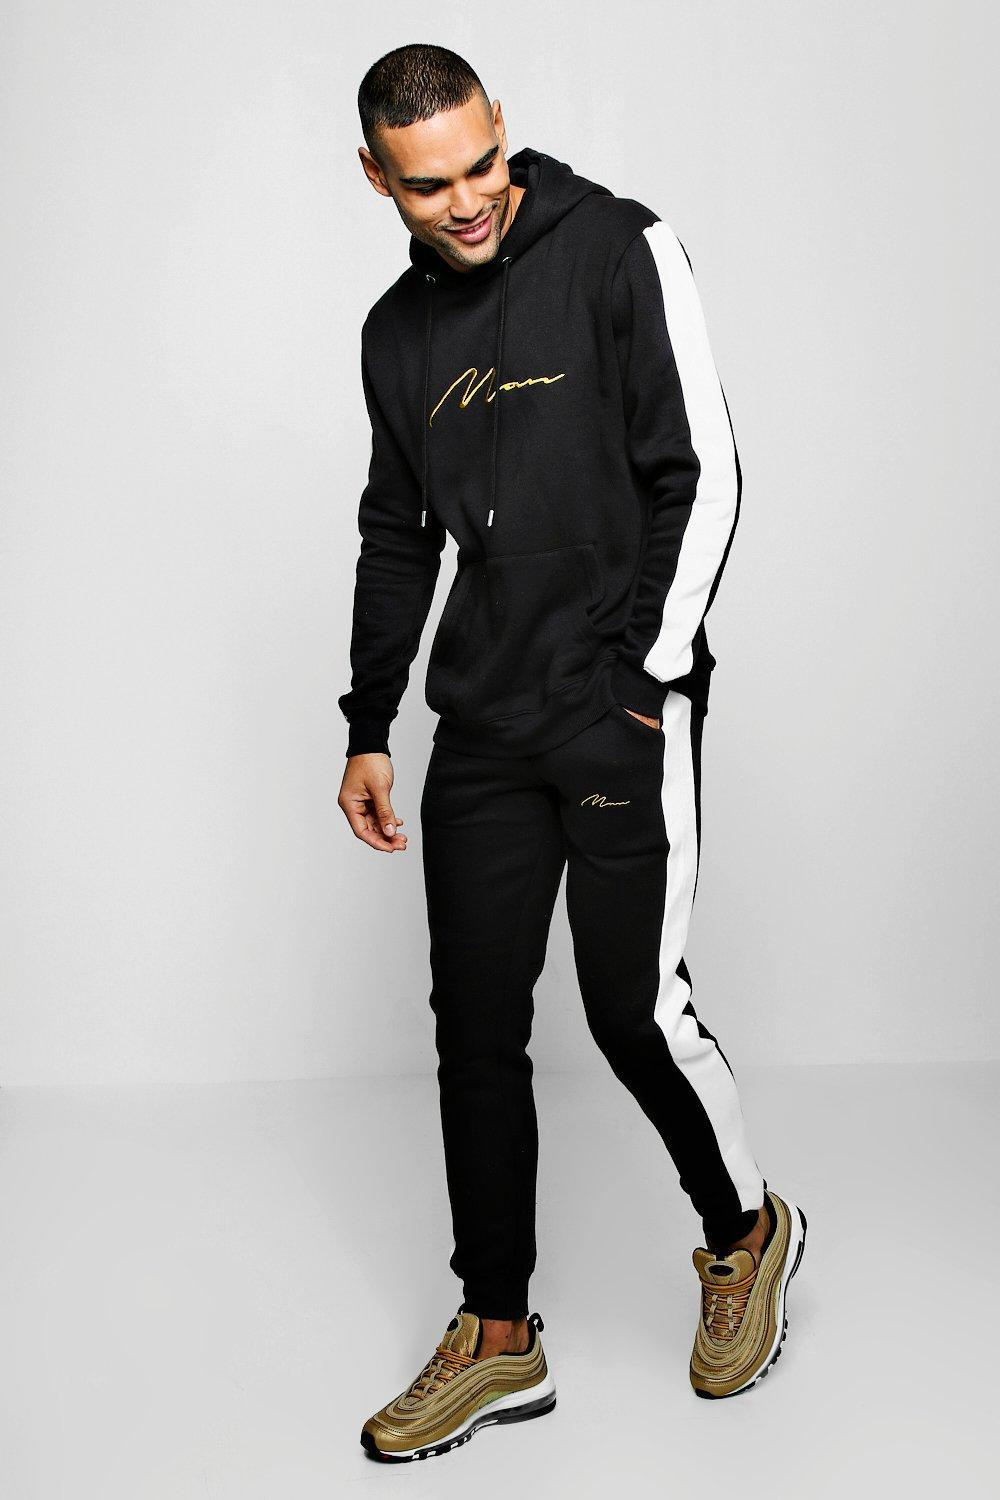 79f1dd94f7ab Lyst - Boohoo Contrast Panel Tracksuit With Gold Man Embroidery in ...